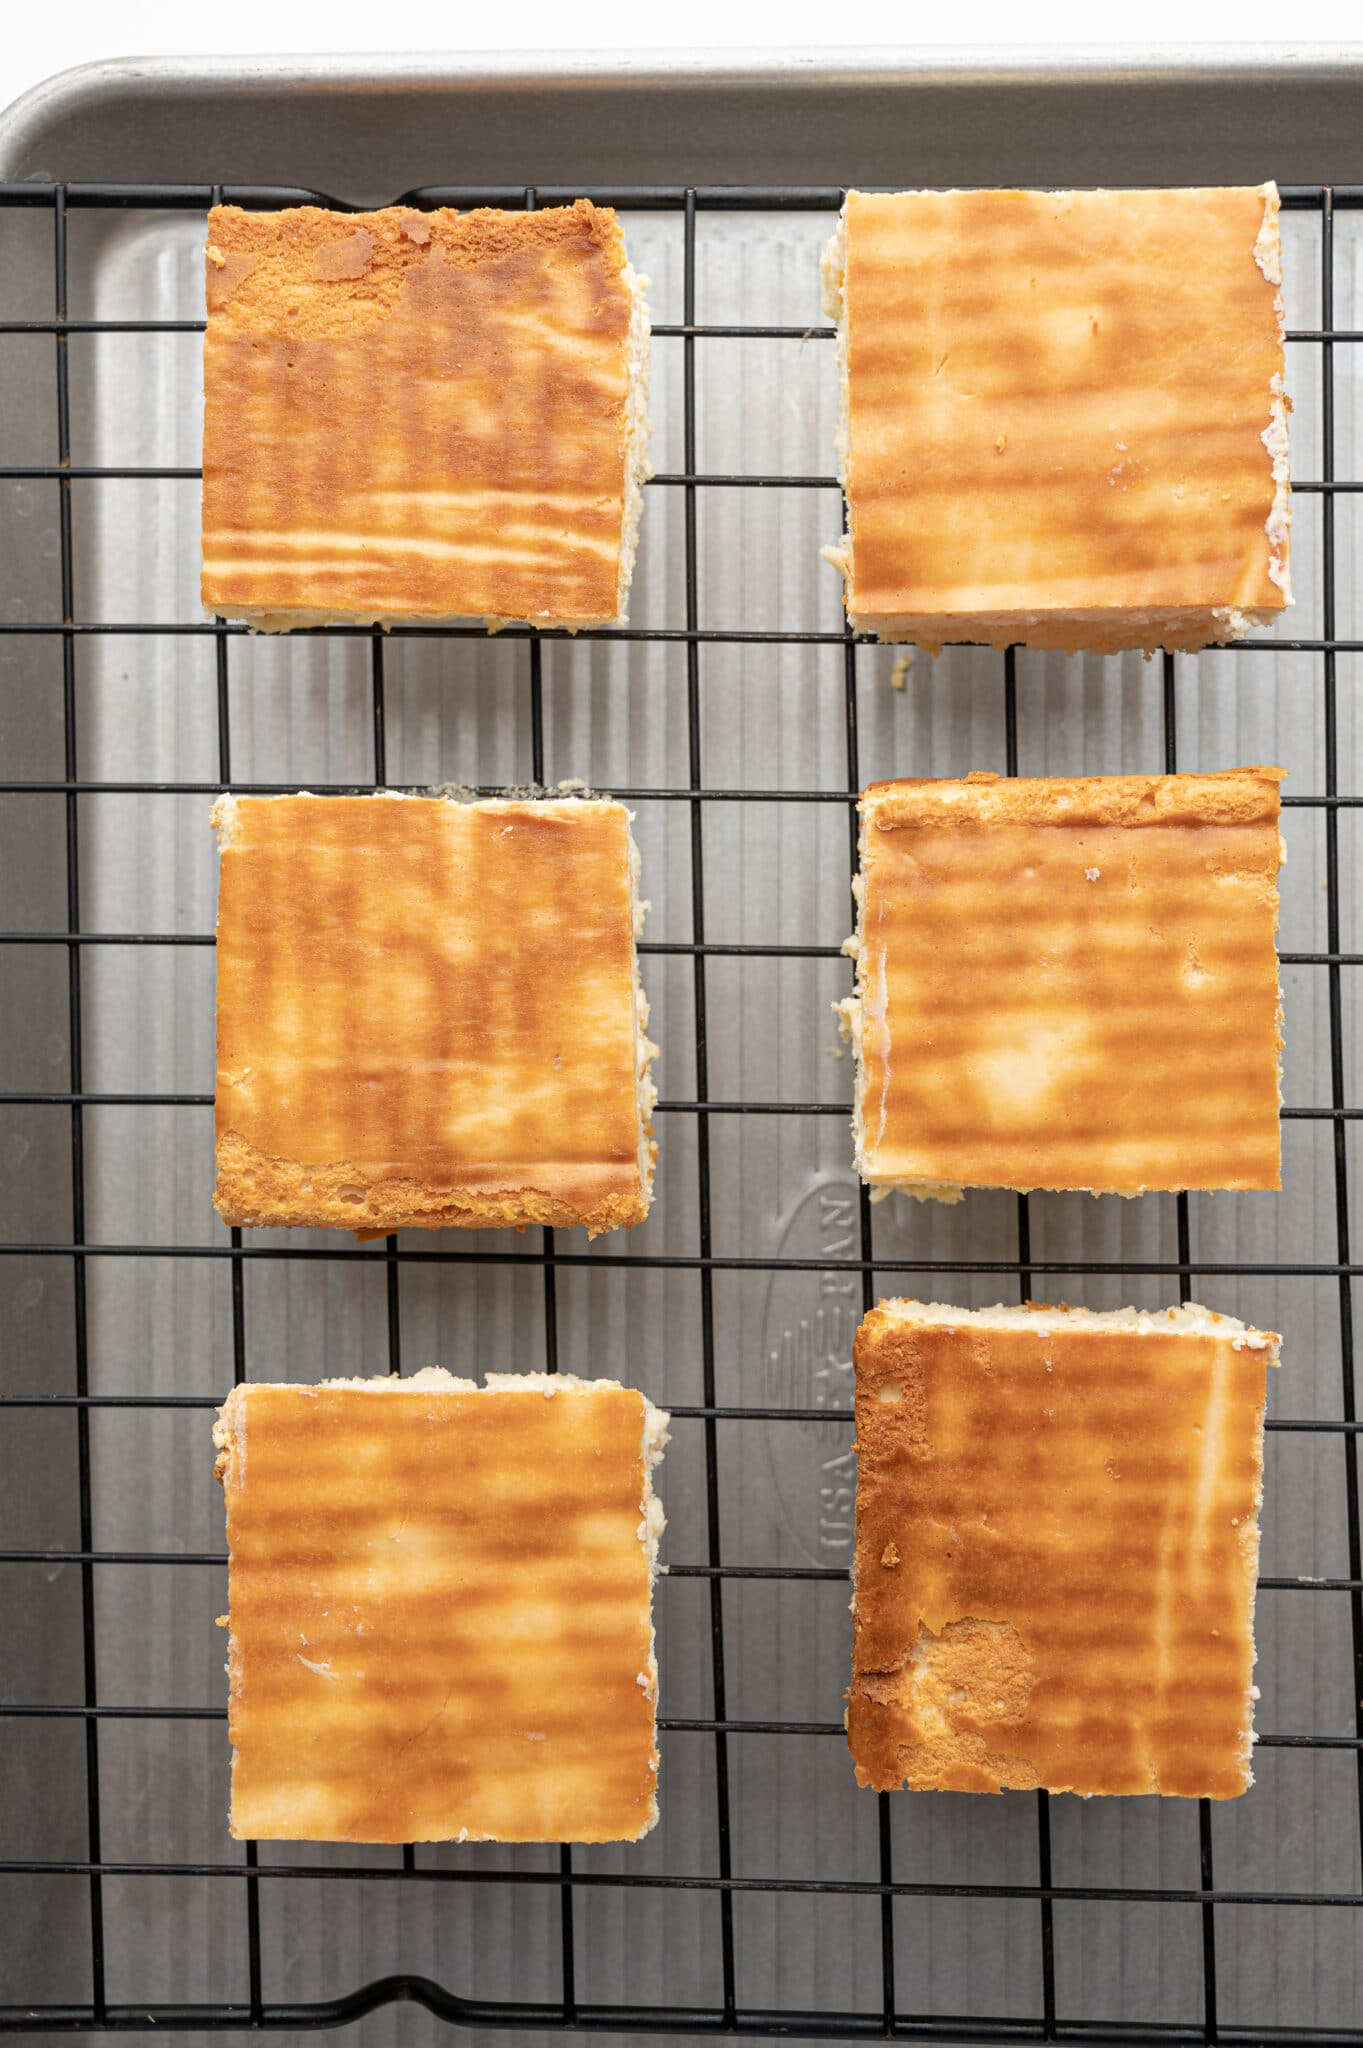 Cute square of baked cheesecake on a cooling rack